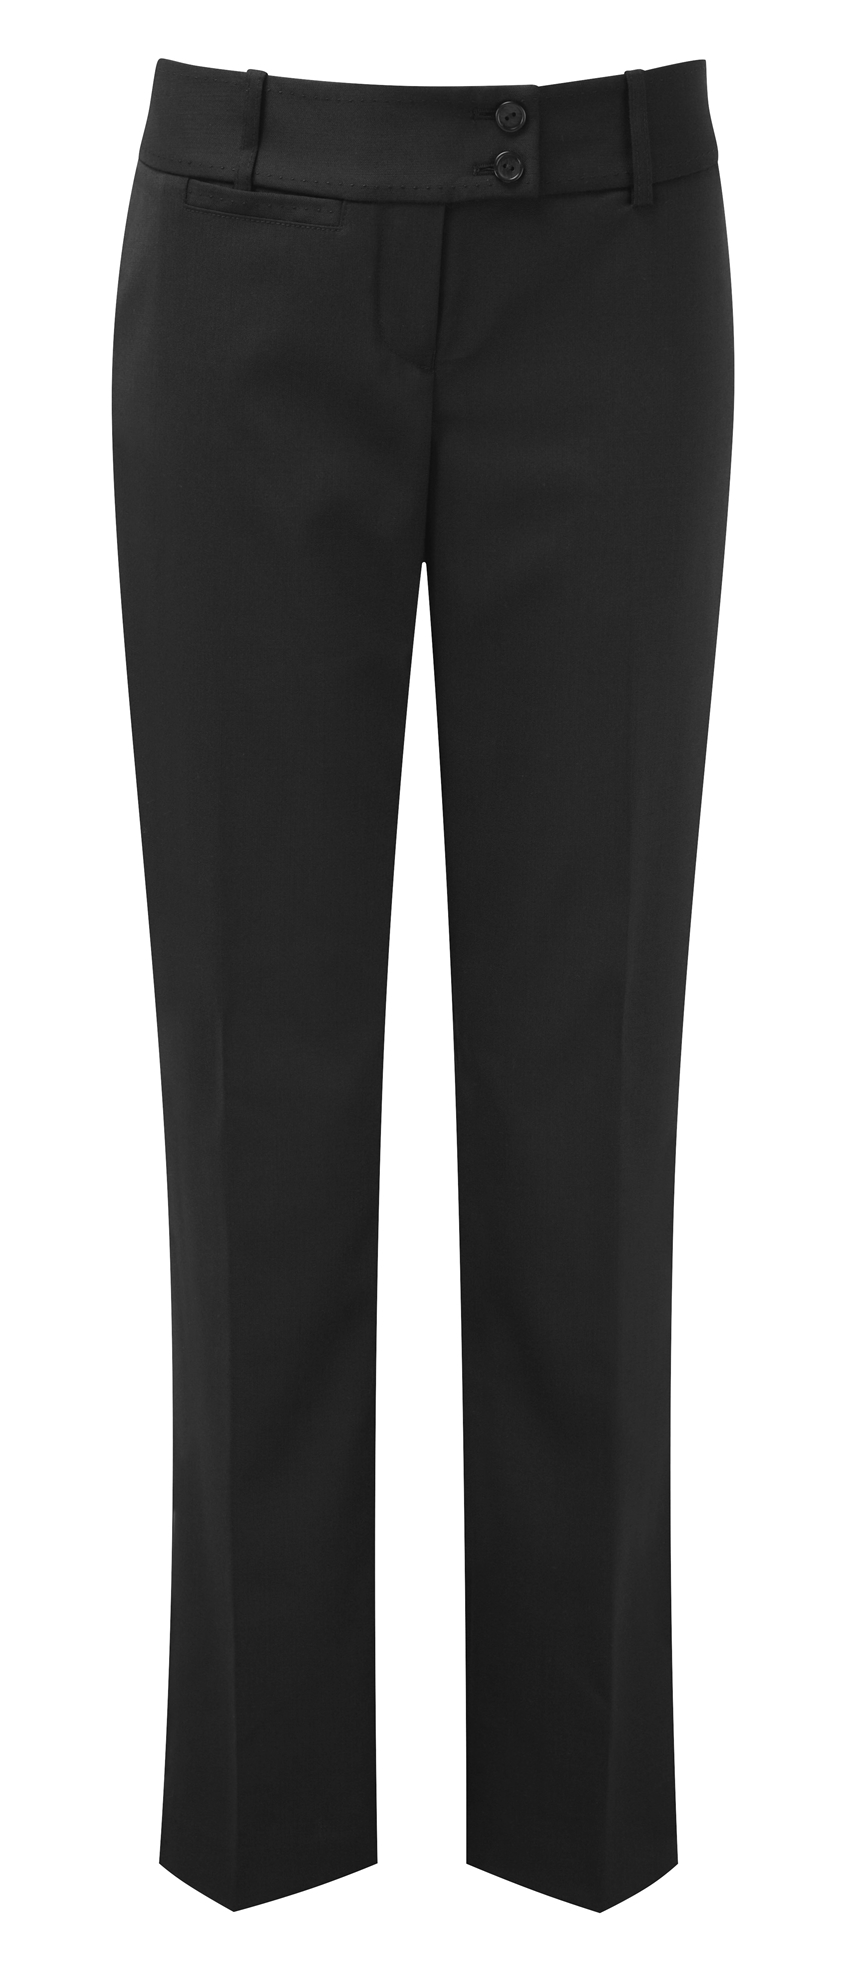 Picture of Dorchester Parallel Leg Trousers - Black